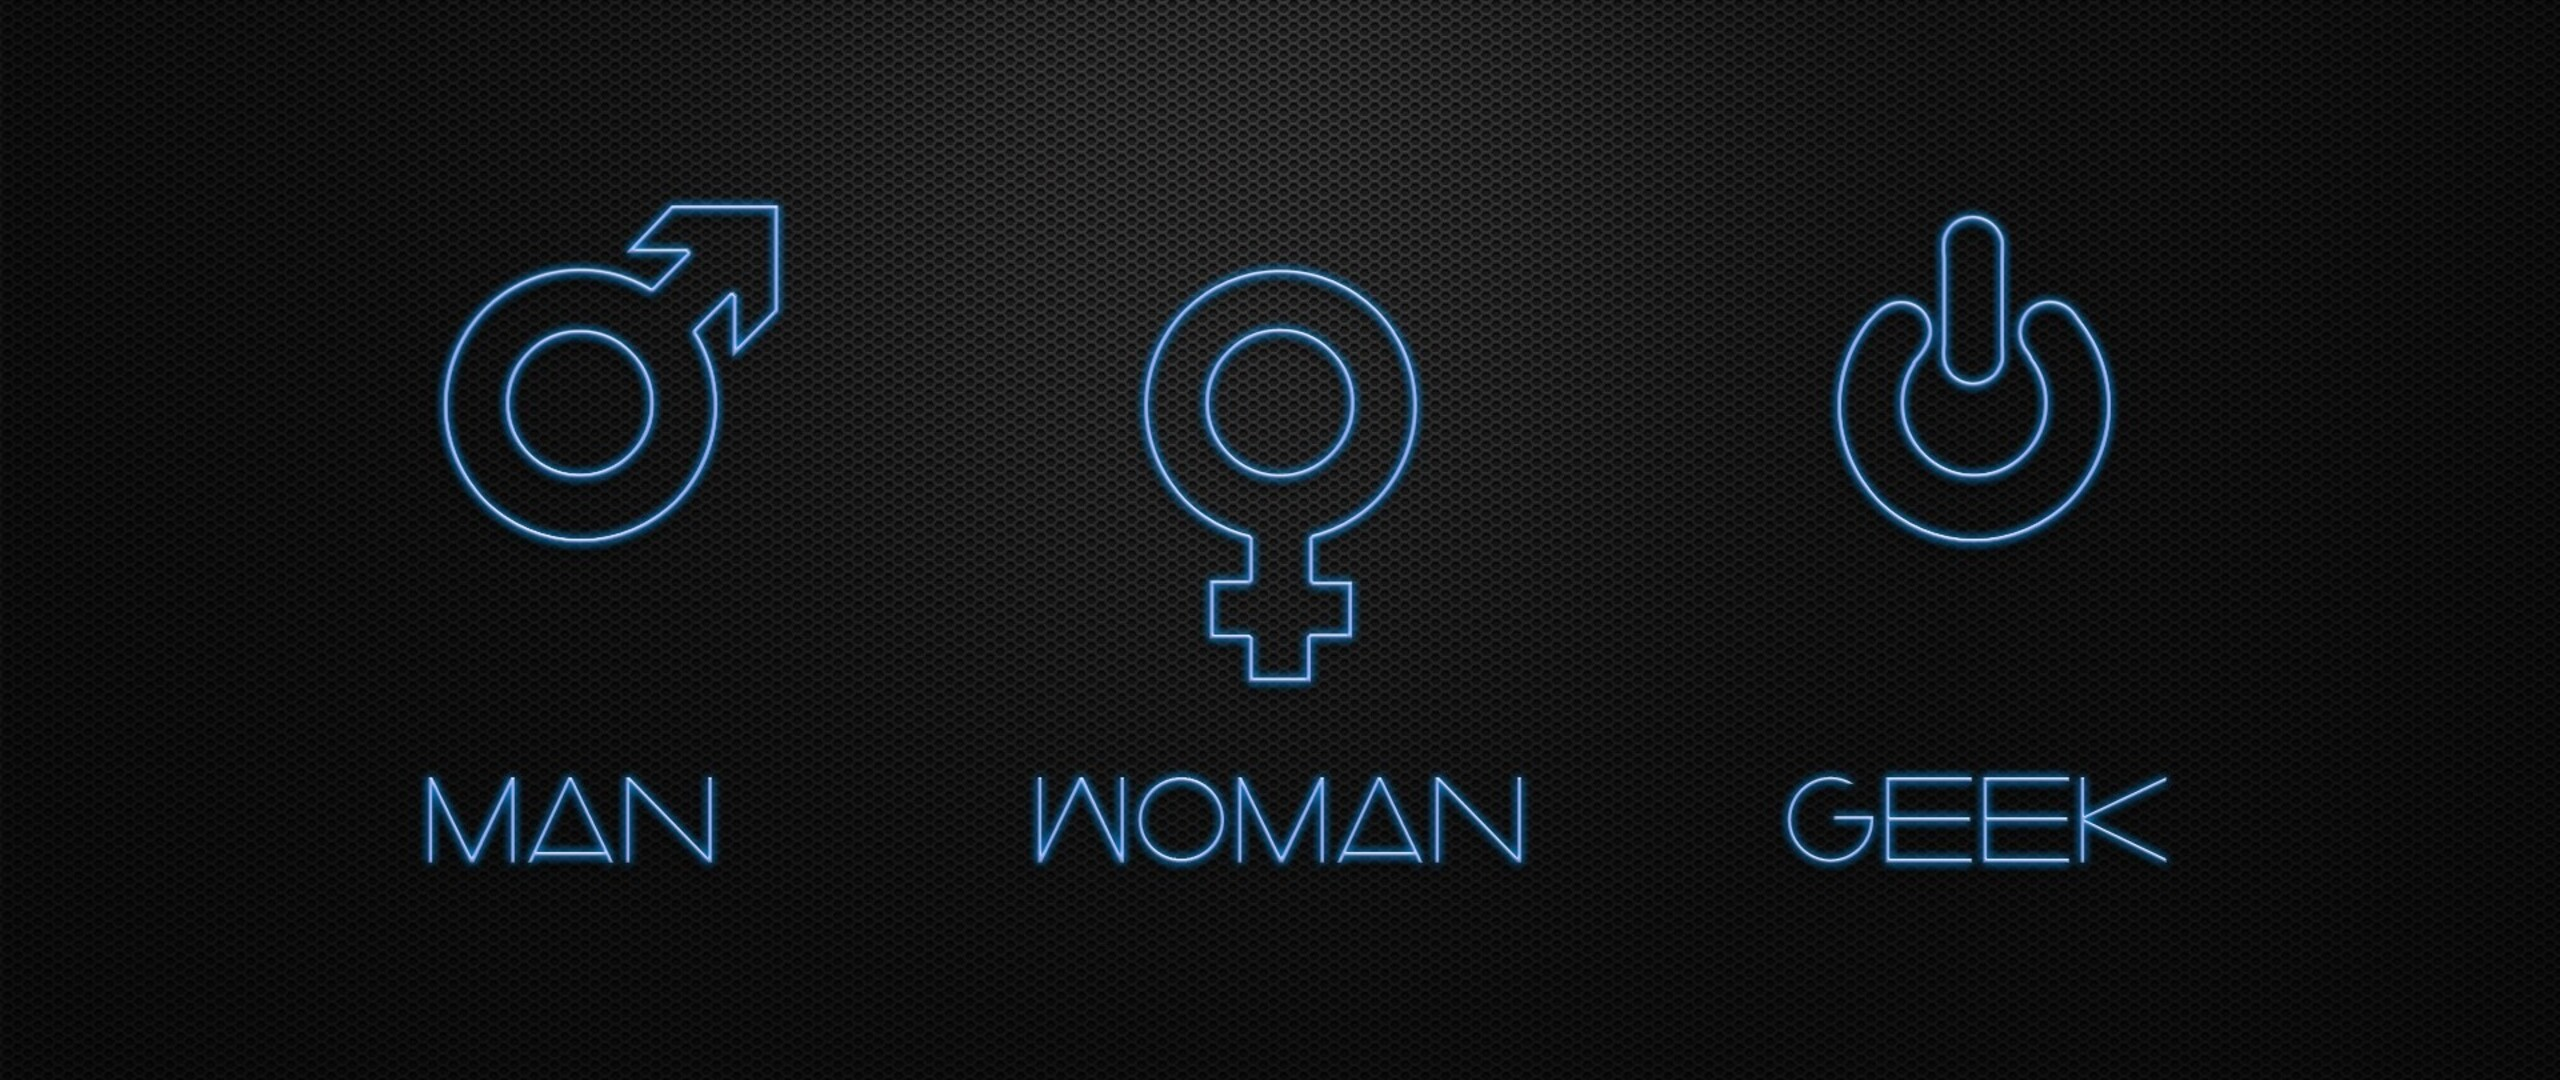 2560x1080 geek minimalism 2560x1080 resolution hd 4k wallpapers images backgrounds photos and - Nerd wallpaper for walls ...